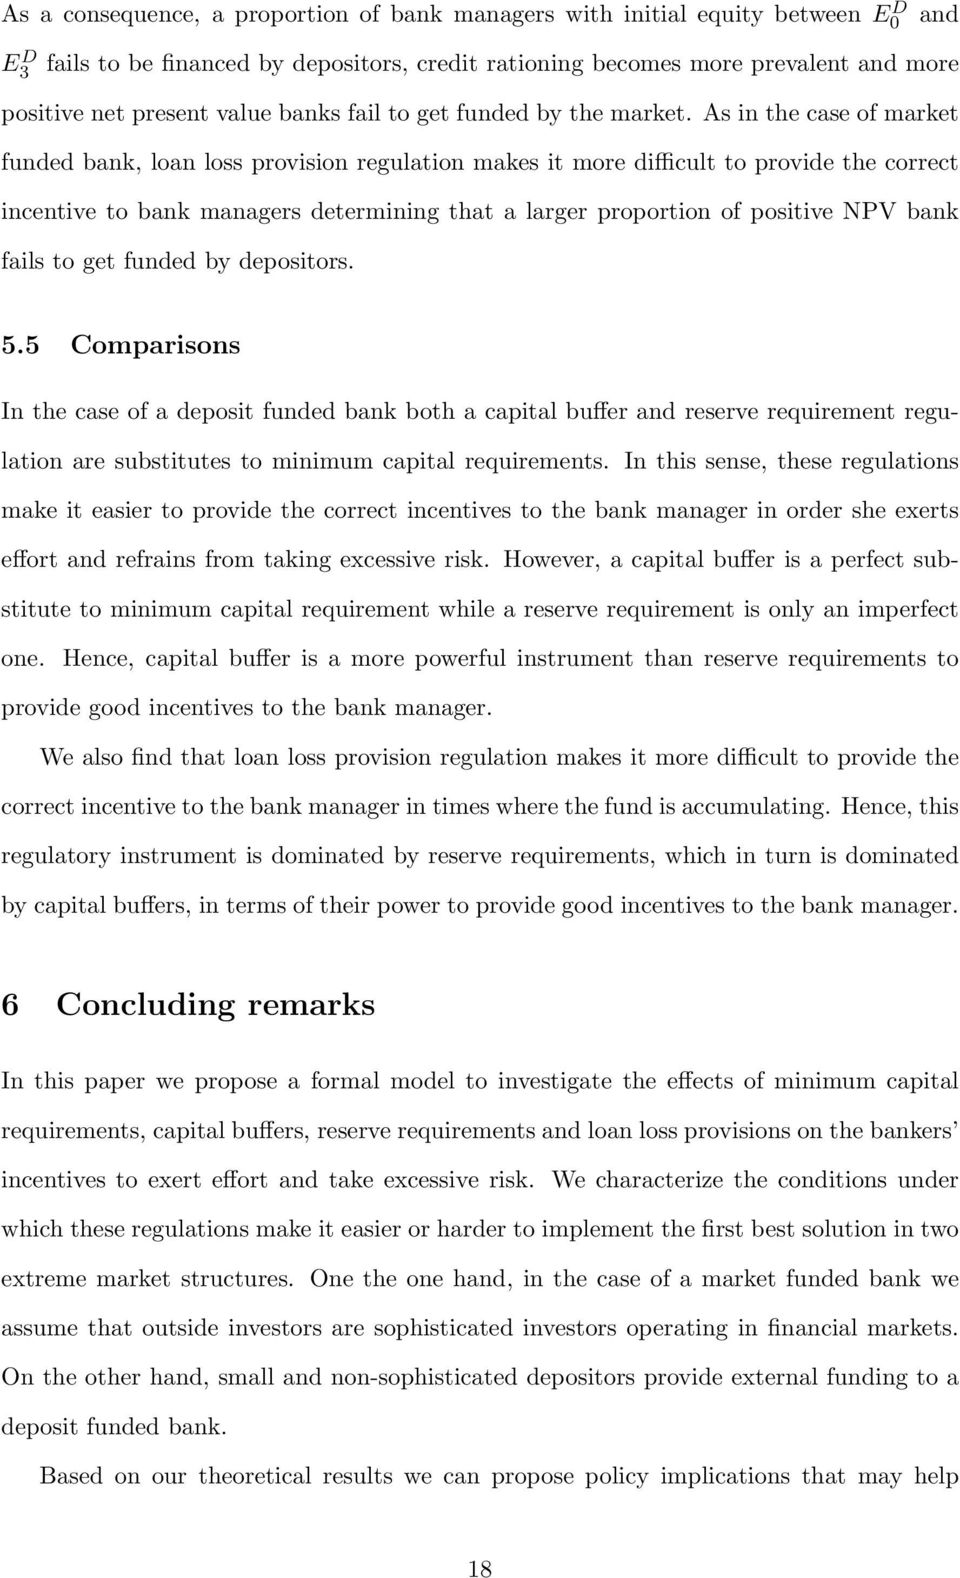 As in the case of market funded bank, loan loss provision regulation makes it more difficult to provide the correct incentive to bank managers determining that a larger proportion of positive NPV